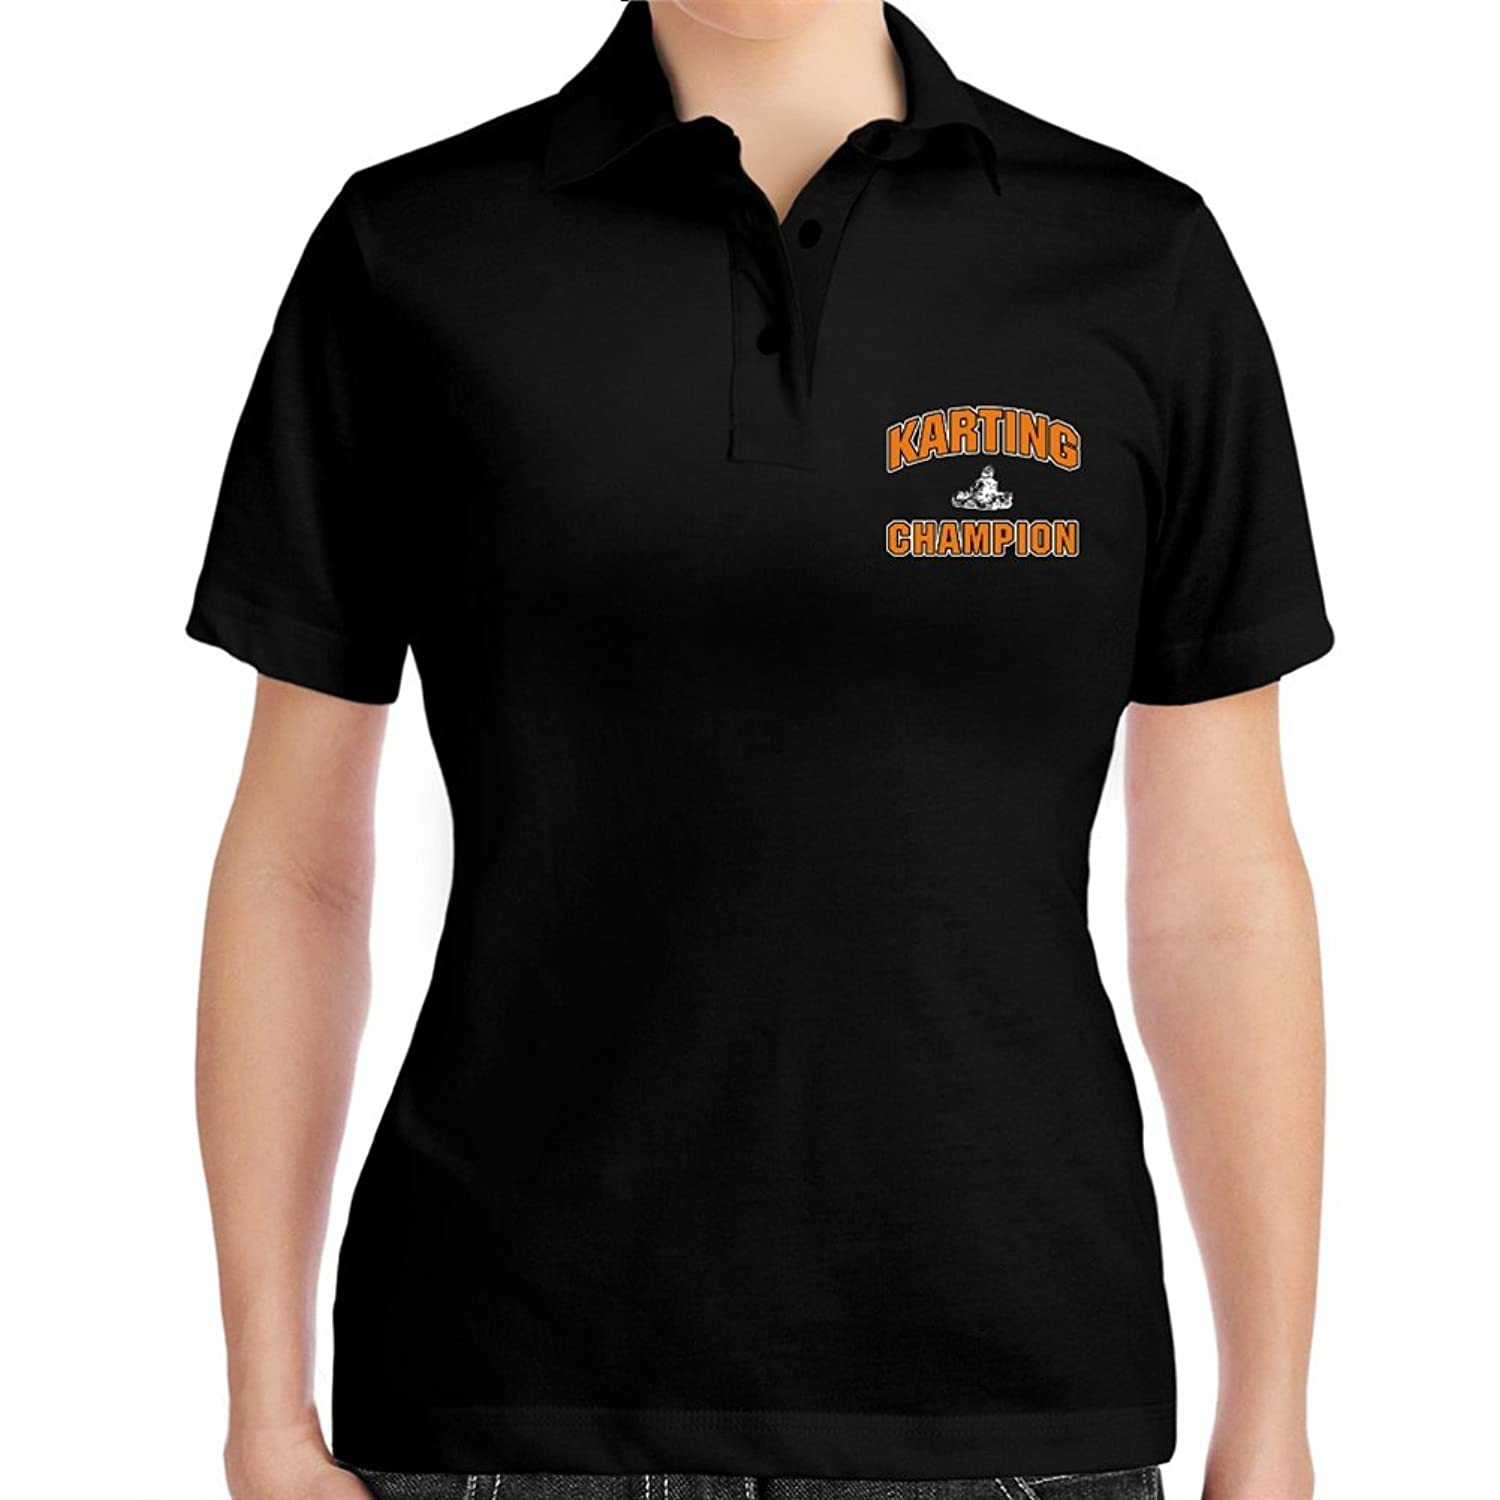 Karting champion Women Polo Shirt